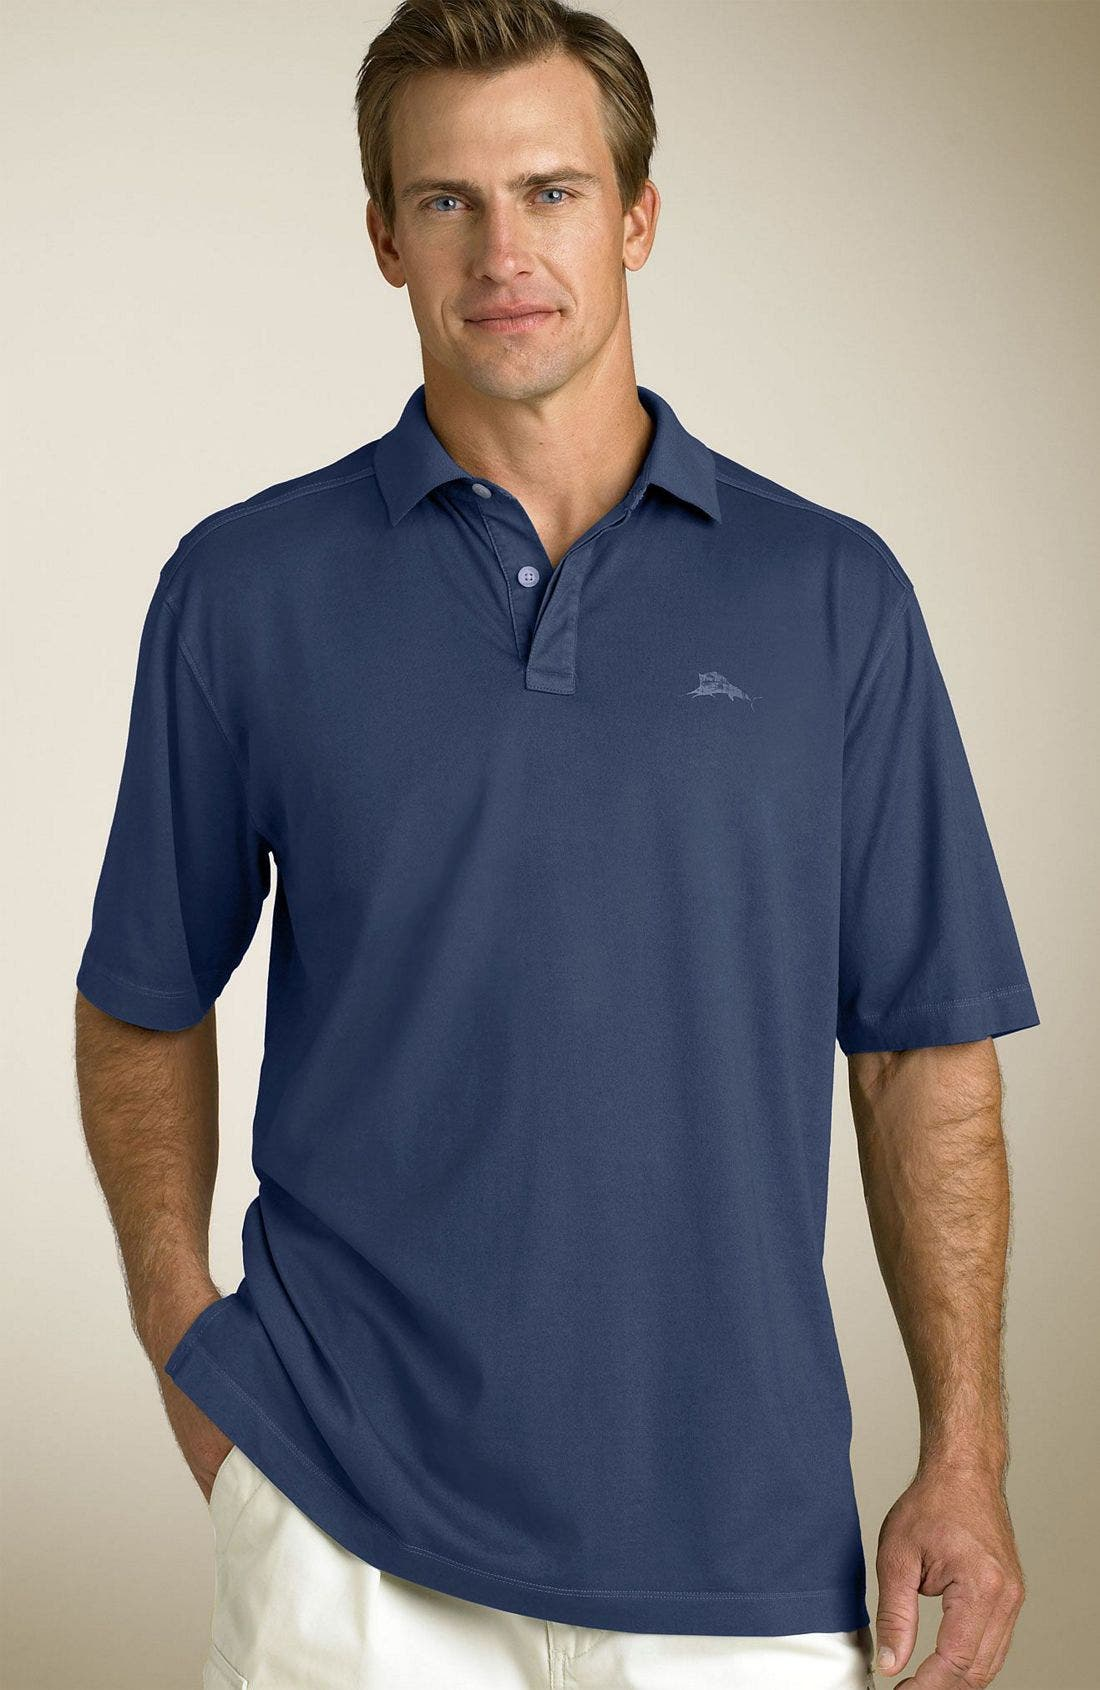 Alternate Image 1 Selected - Tommy Bahama Relax 'Built to Chill' Polo